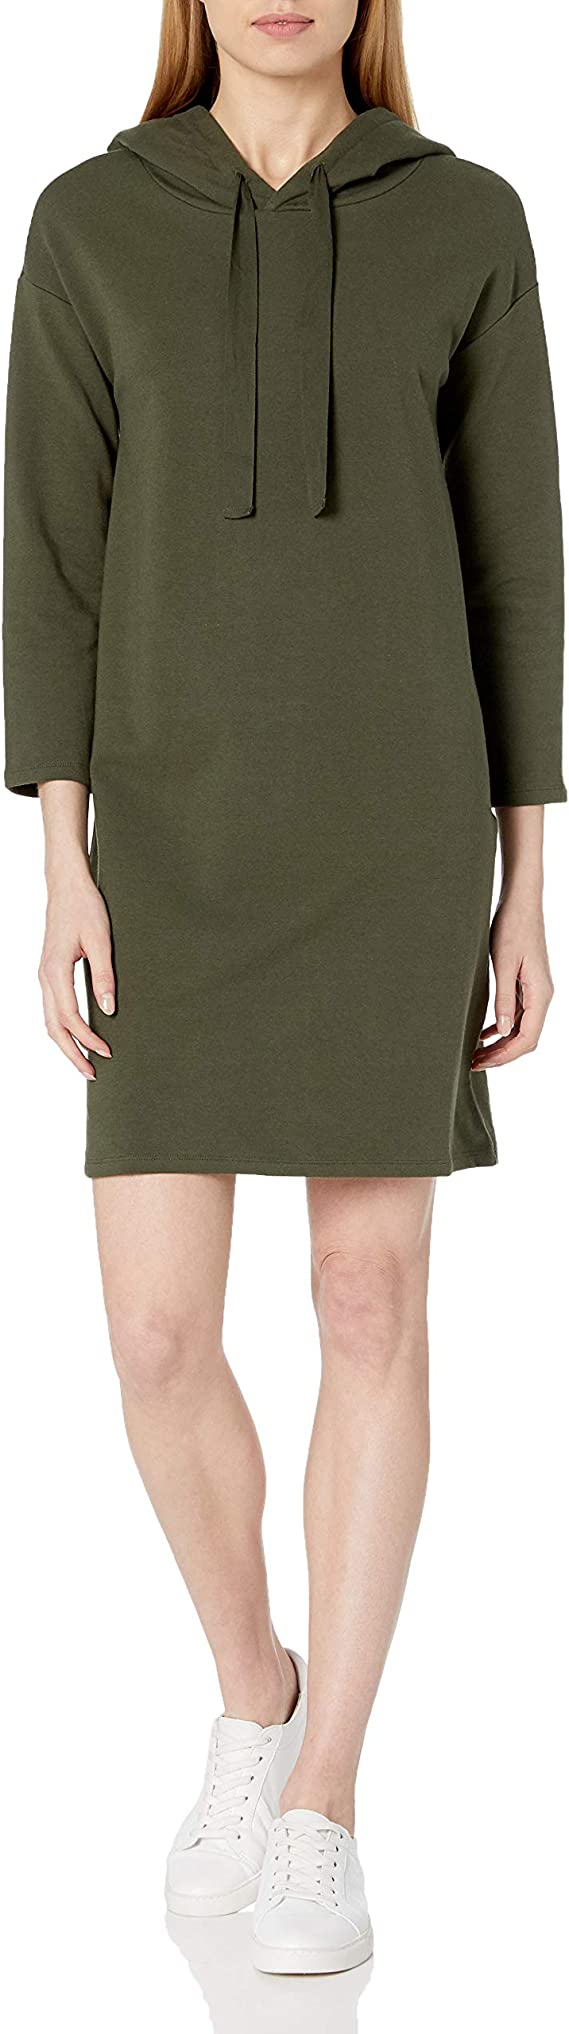 Daily Ritual Women's Terry Cotton and Modal Bracelet-Sleeve Sweatshirt Dress Sweater dresses for women